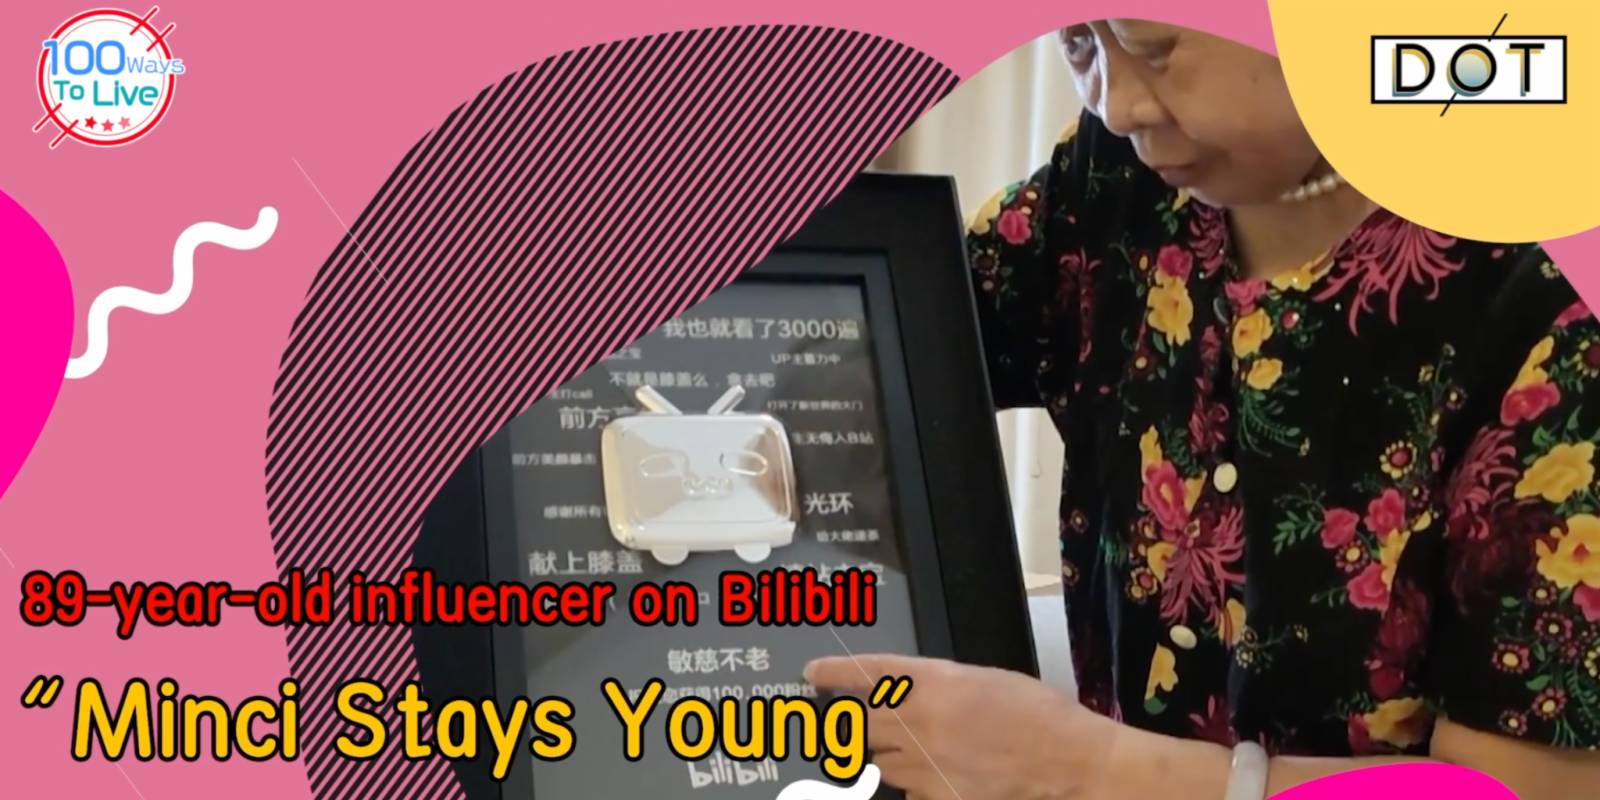 Never too late to 'be myself': 89-year-old grandma becomes video influencer